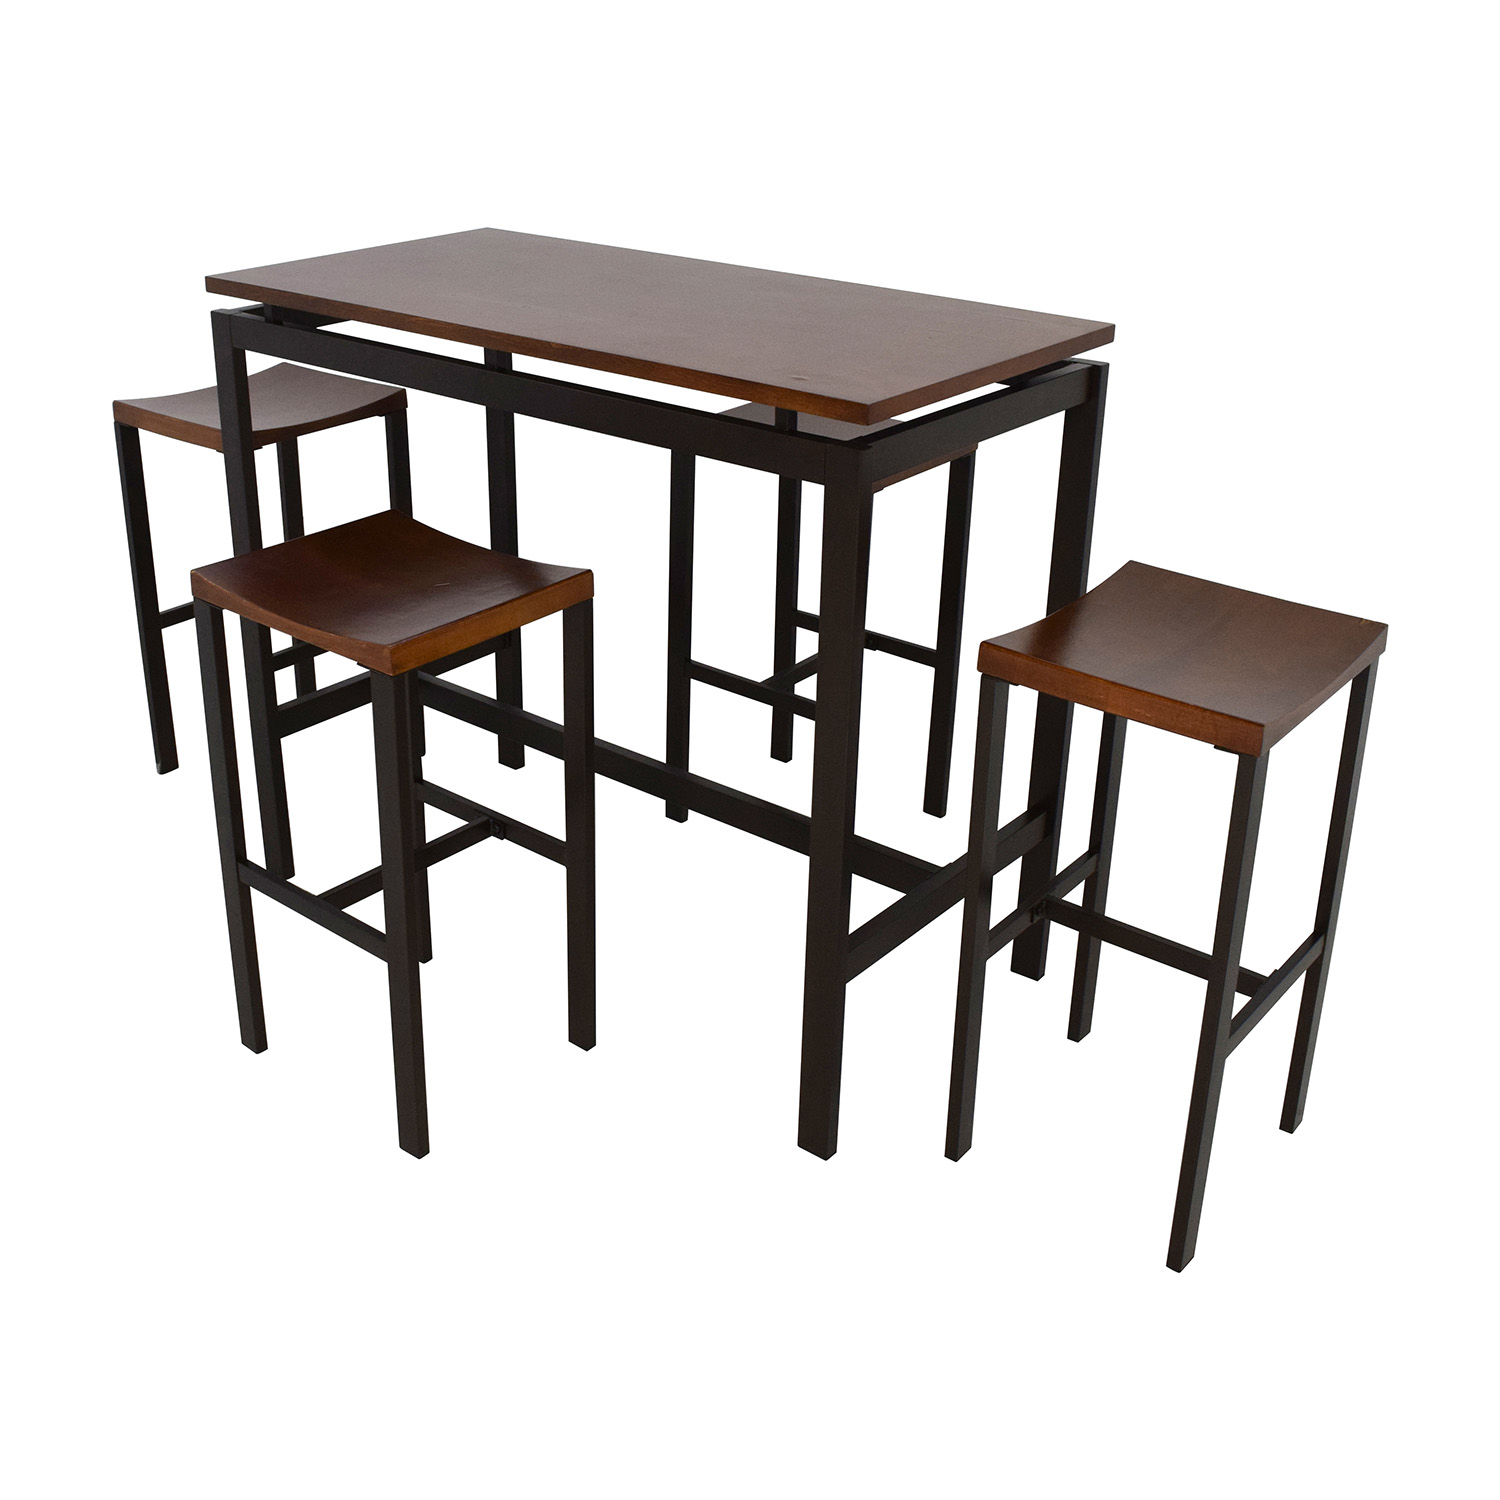 Coaster Fine Furniture Coaster Fine Furniture Atlus Counter Height Table dimensions